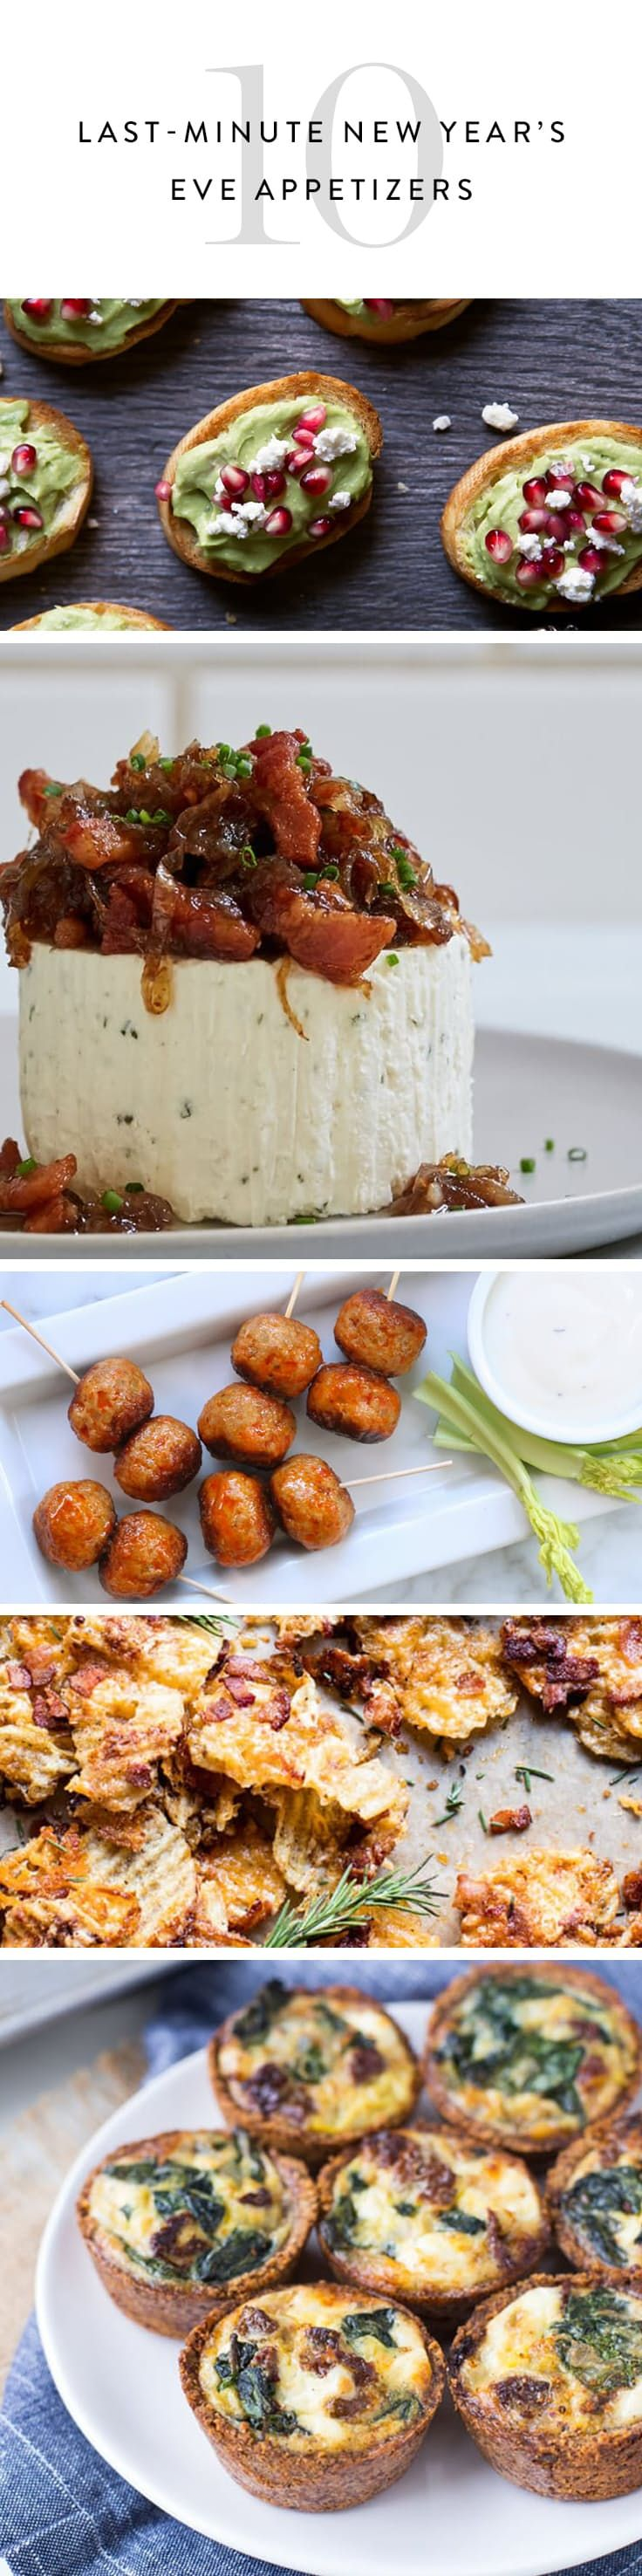 16 Brilliant Last-Minute New Year's Eve Appetizers